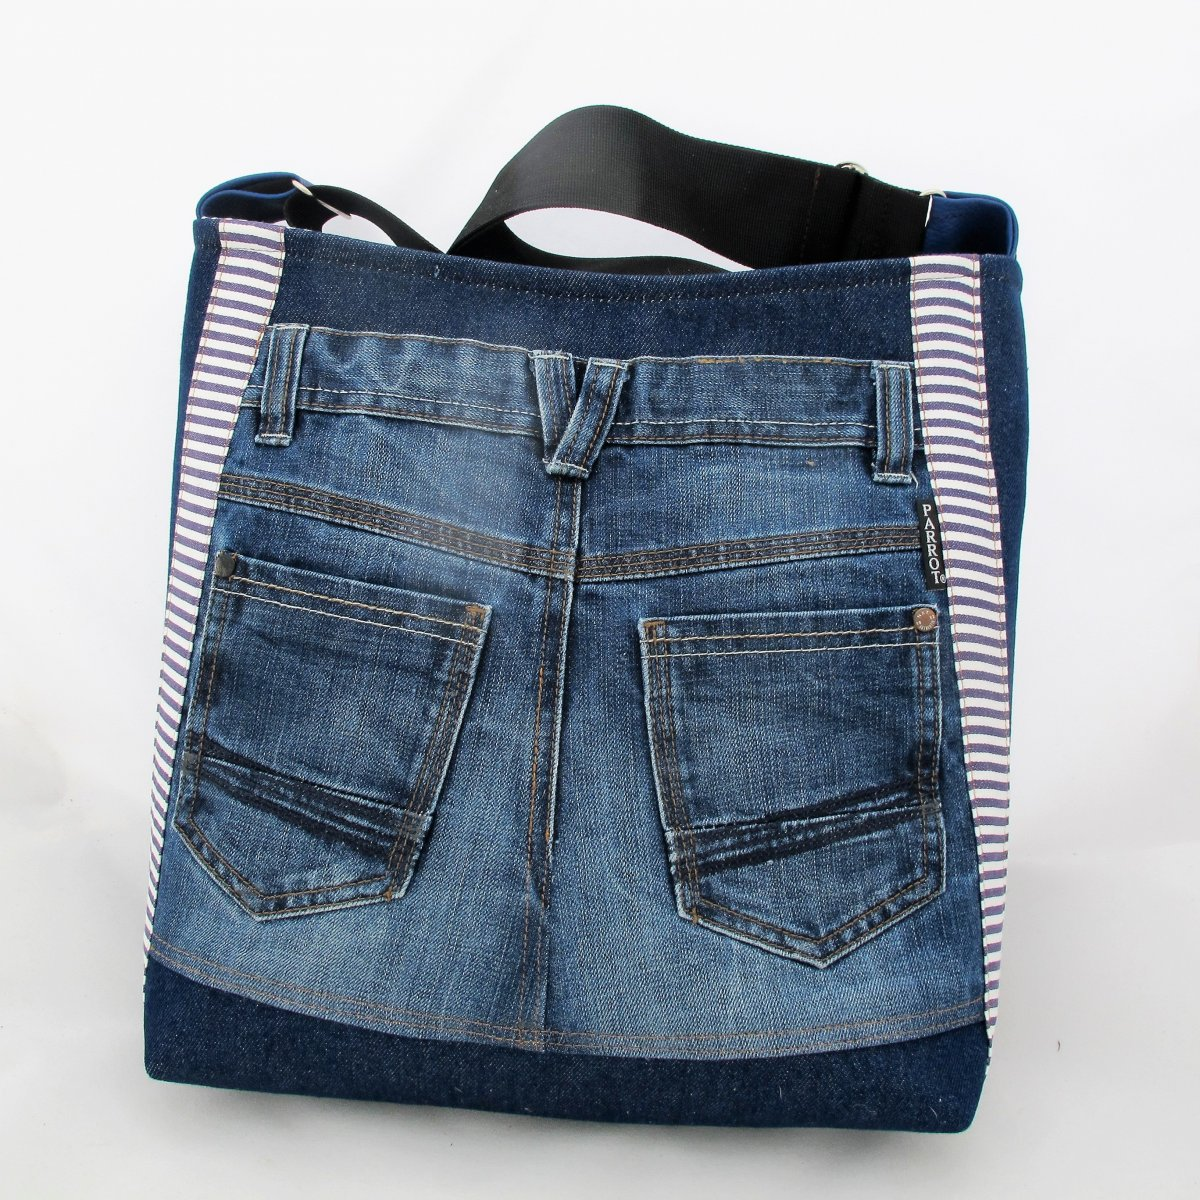 BIG POCKET, STRIPED JEANS * PARROT®